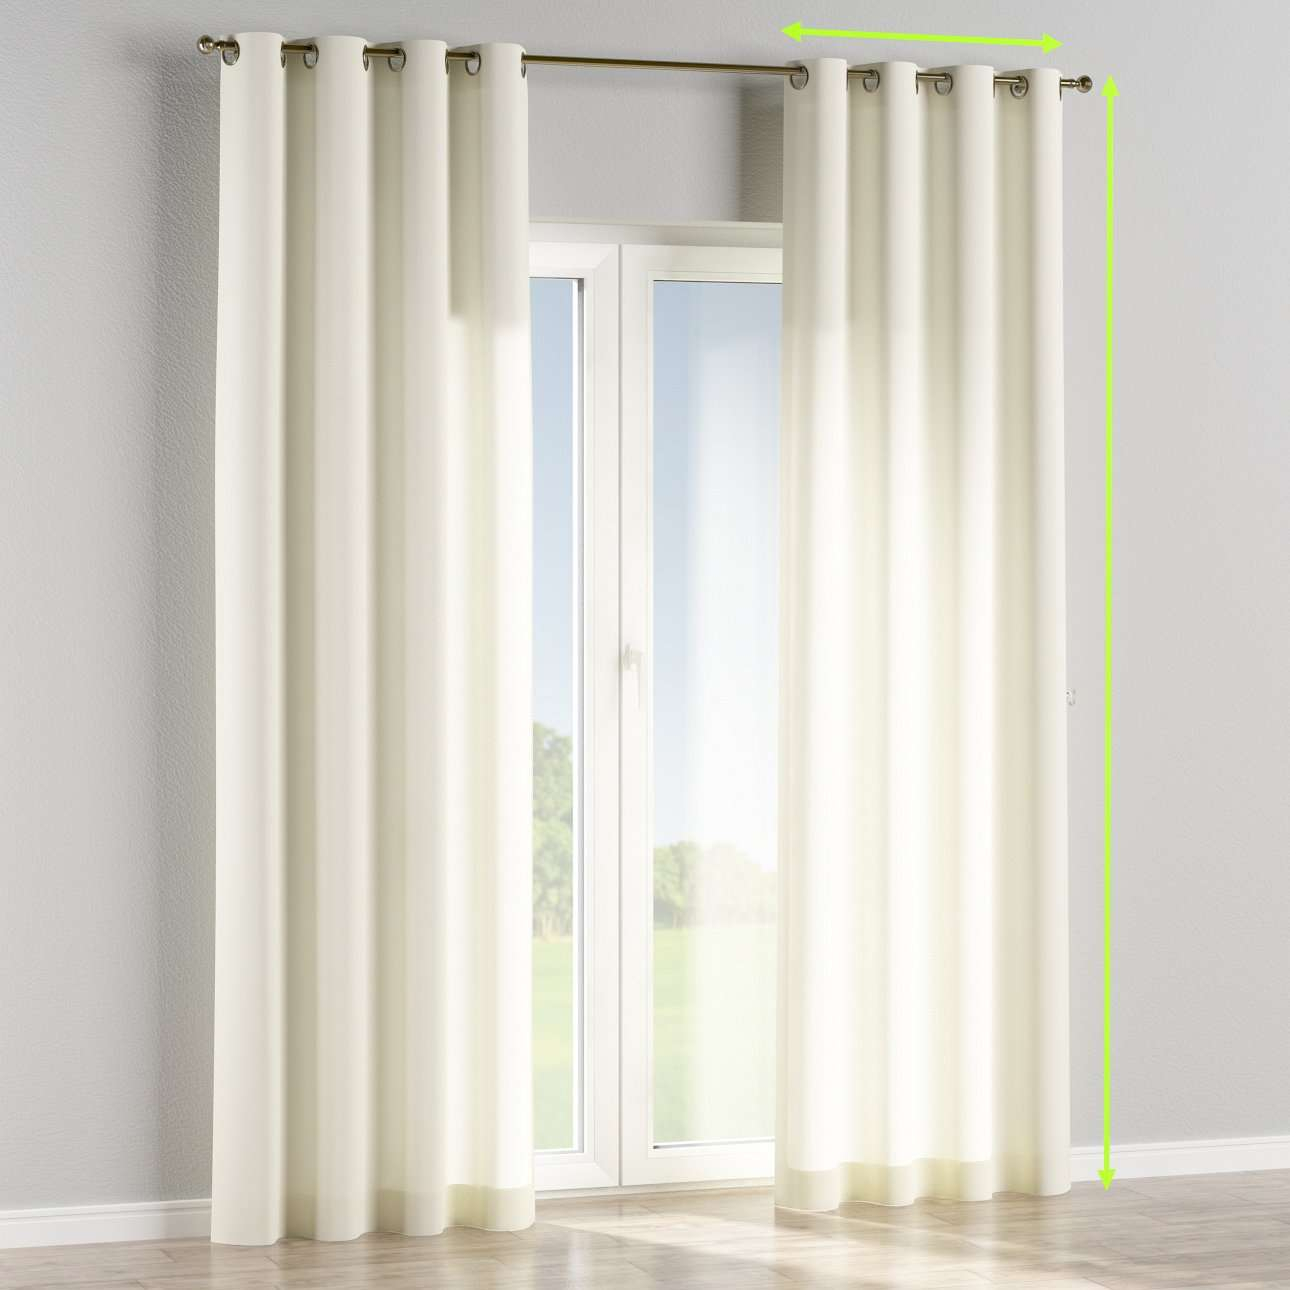 Eyelet curtains in collection Jupiter, fabric: 127-00